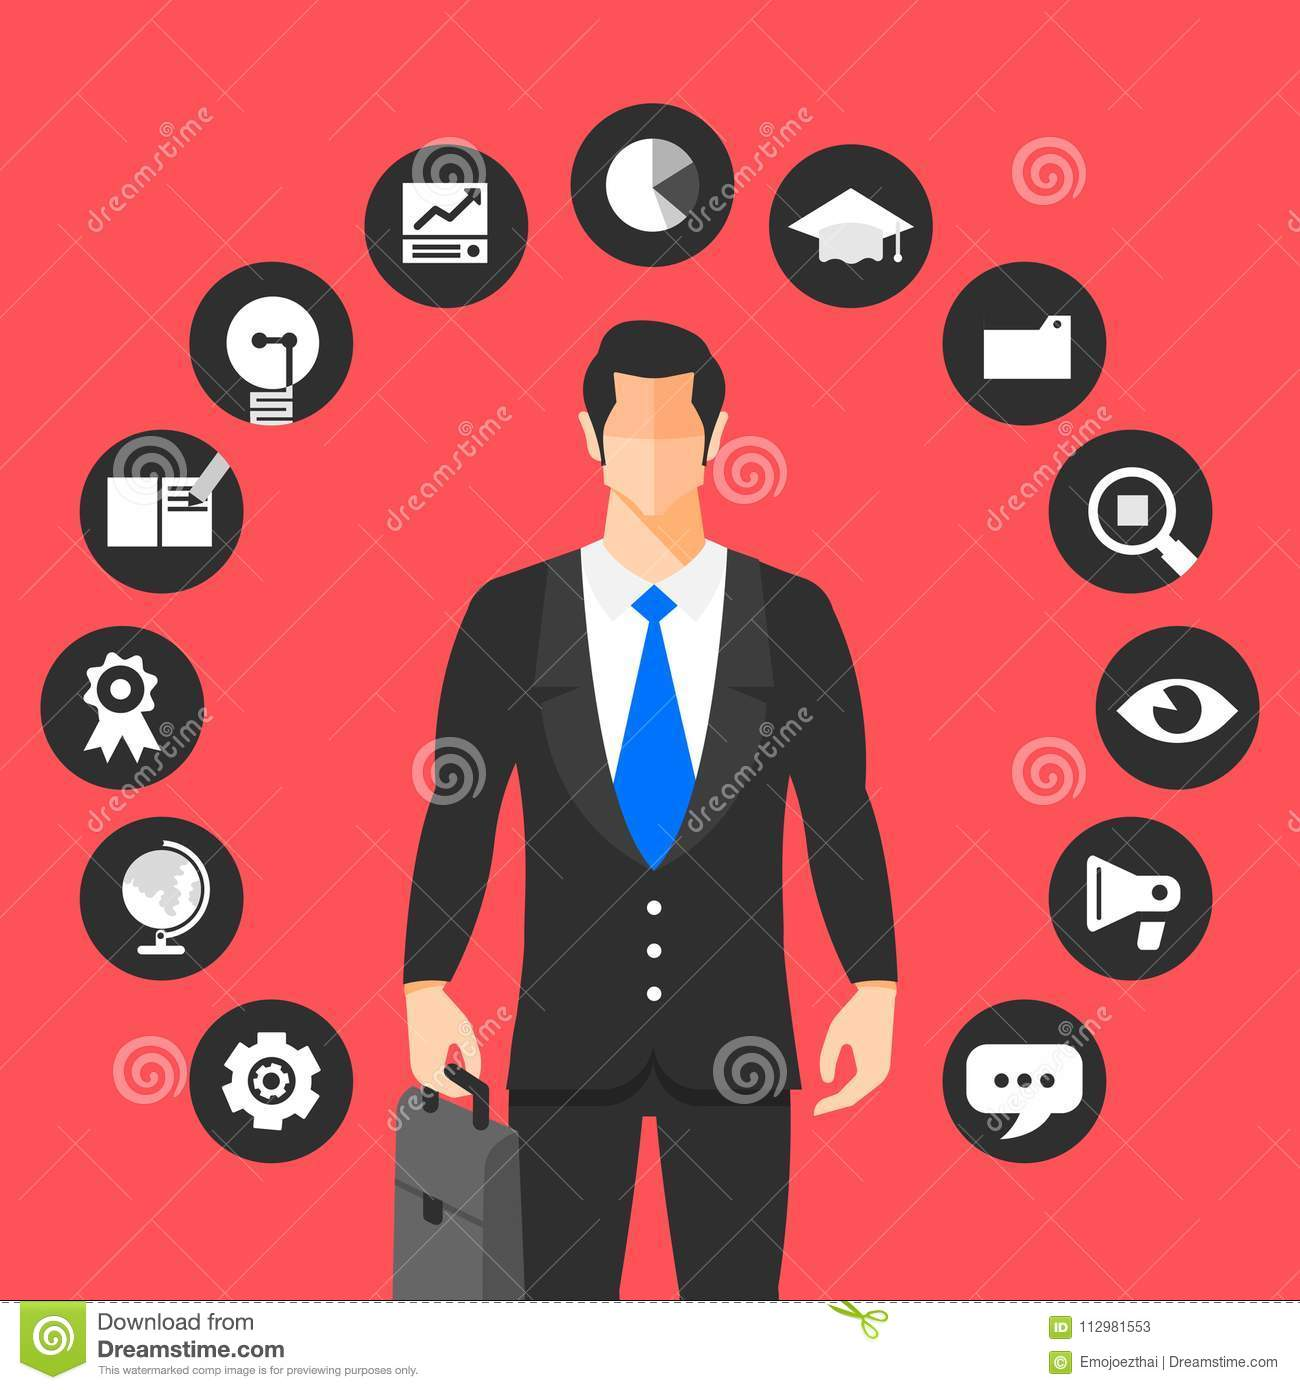 businessman stand around icon foe business activity. Vector illustrate.